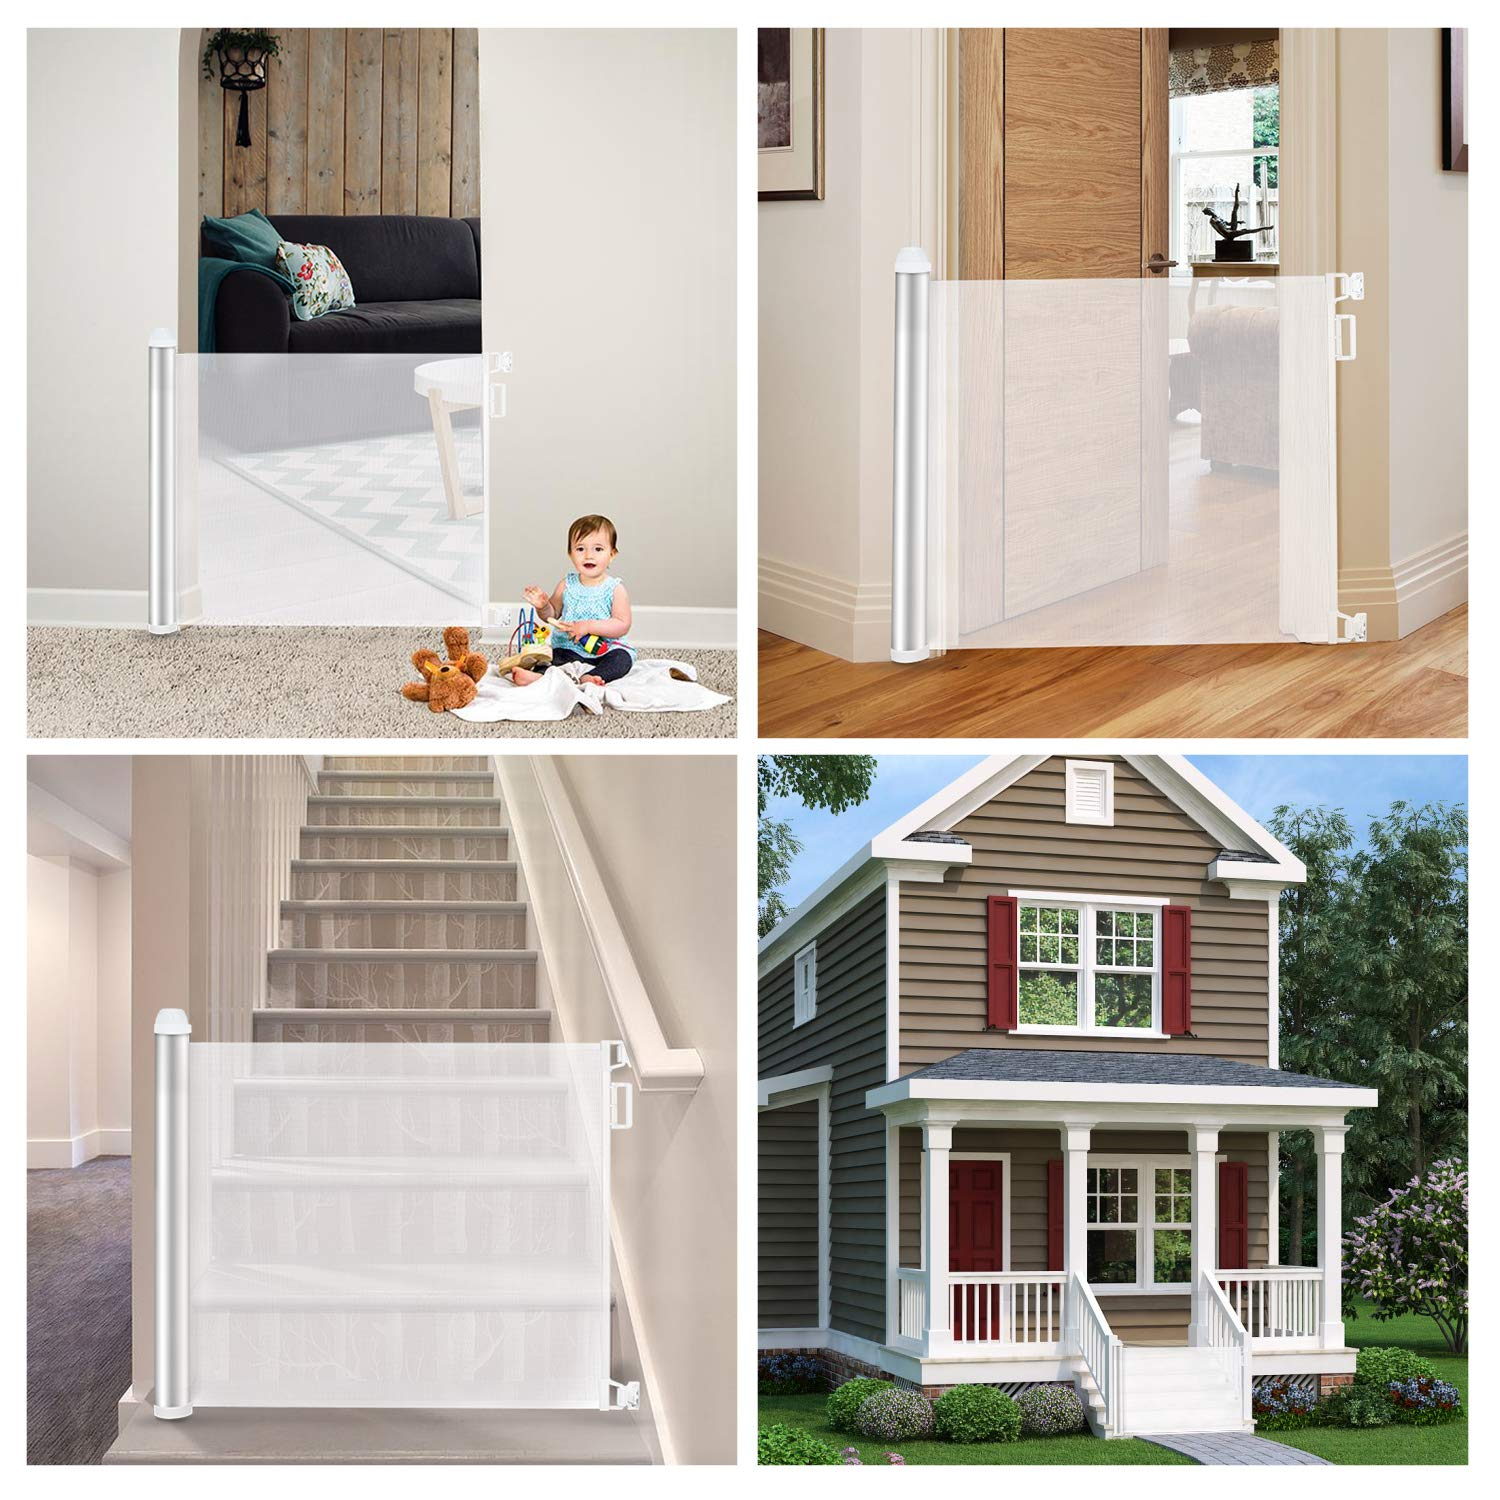 Baby Retractable Mesh Gates, Extra Wide Safety Gate/Pet Dog Gate Replacement for Stairs/Door/Stairway - Flexible Extension Waterproof Rustproof Aluminum White Protect Toddlers (Silver White) by PRObebi (Image #3)